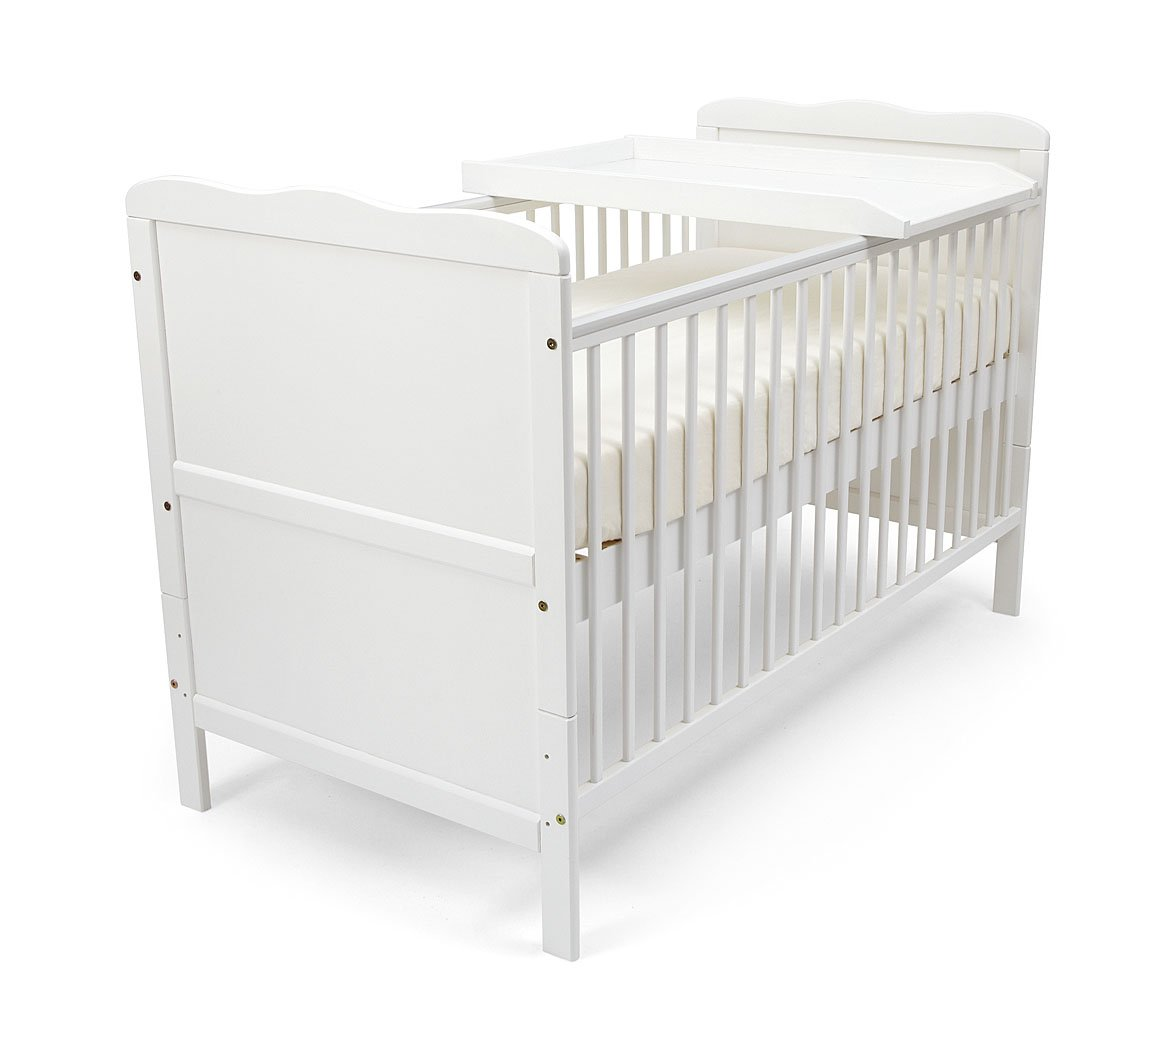 NEW BABY ISABELLA COT BED WHITE & Pocket Sprung Mattress/Quilted Topper. Poppy' s Playground